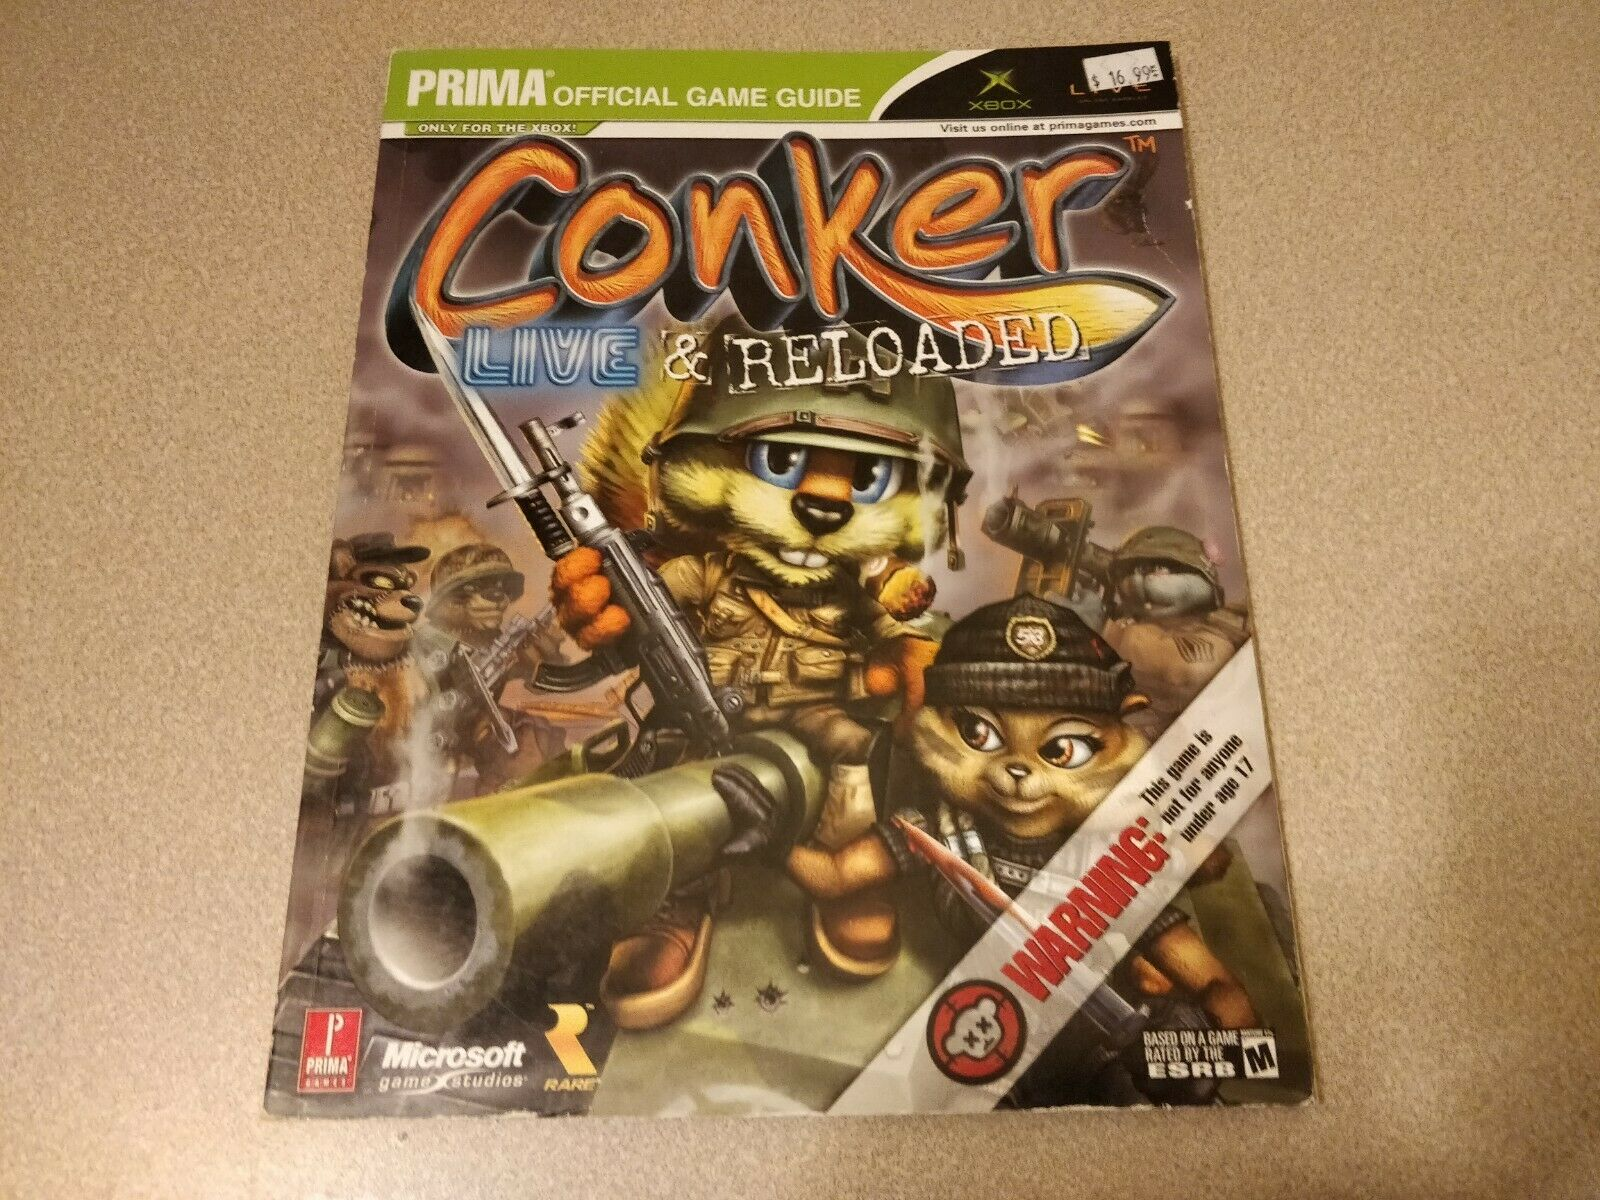 Prima S Official Strategy Guides Conker Live And Reloaded By